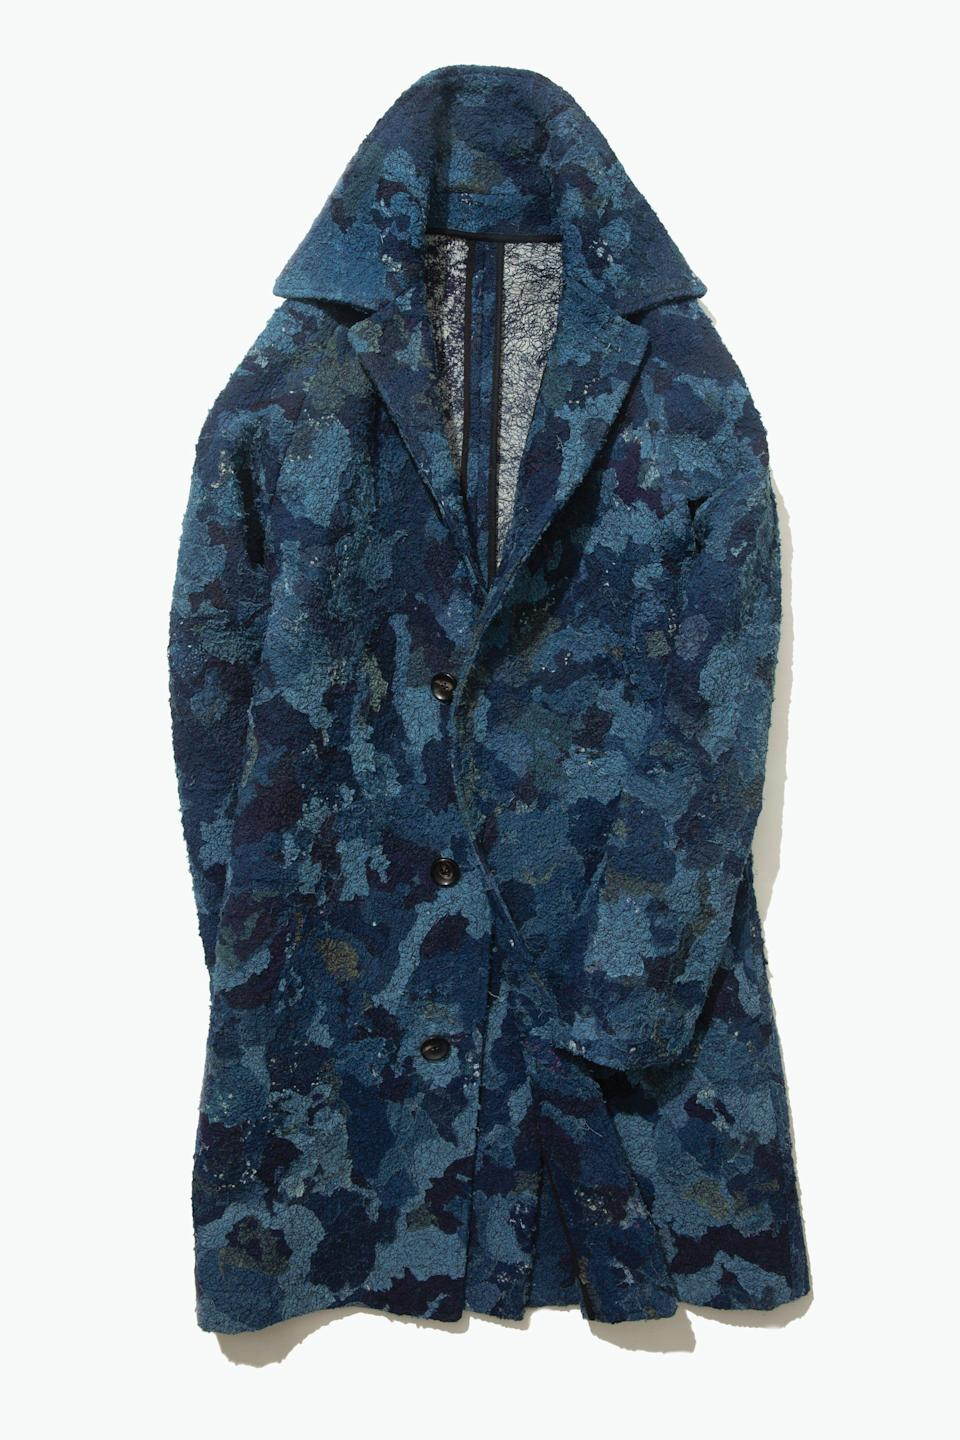 "<p>stoffa.co</p><p><strong>$1600.00</strong></p><p><a href=""https://stoffa.co/products/edition-002-chindi-raglan-coat-indigo"" rel=""nofollow noopener"" target=""_blank"" data-ylk=""slk:Shop Now"" class=""link rapid-noclick-resp"">Shop Now</a></p>"